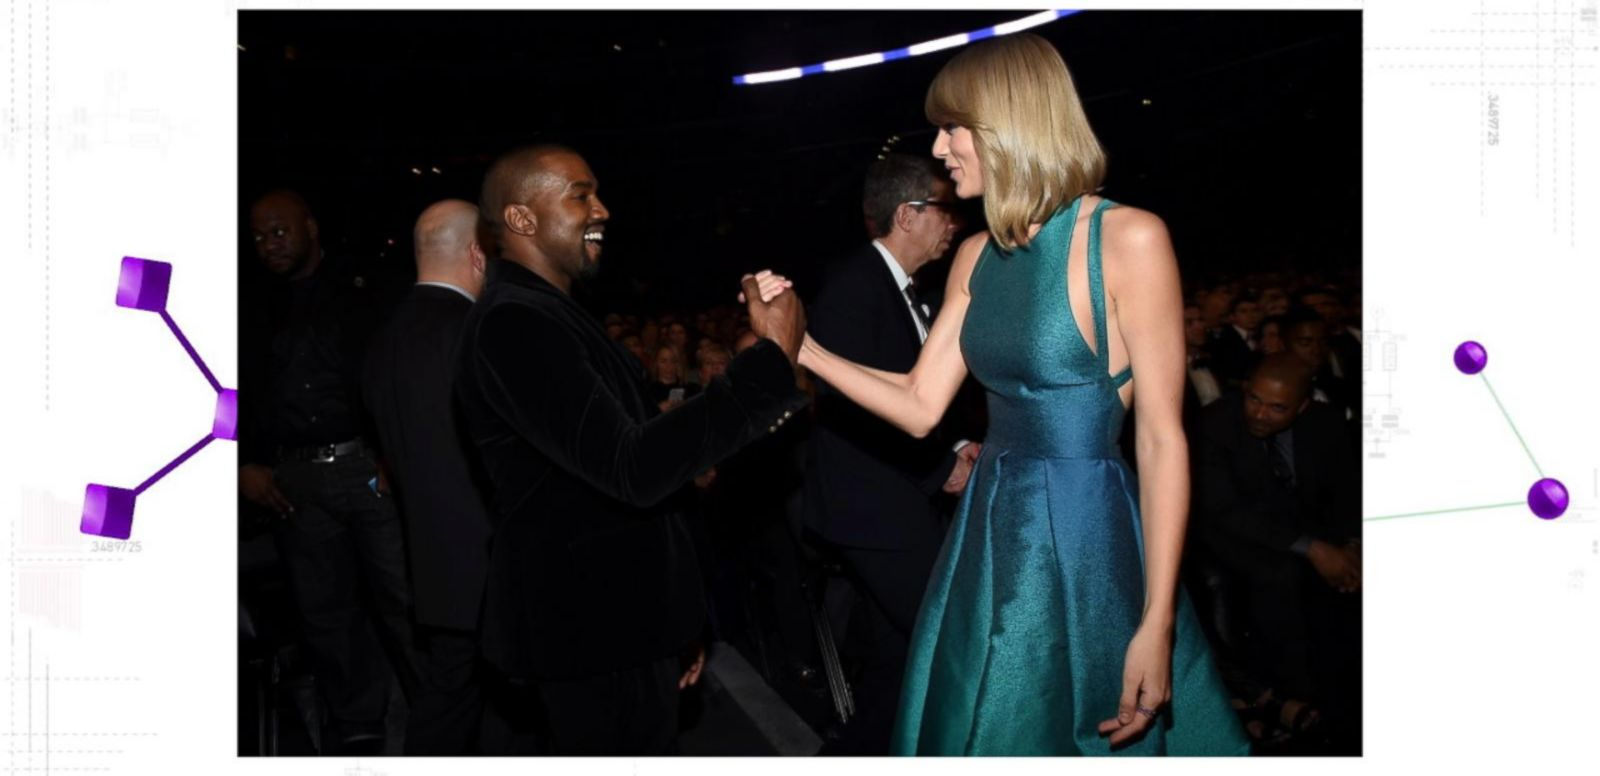 VIDEO: Taylor Swift Says Her Friendship With Kanye West Was 'Important' to Jay Z